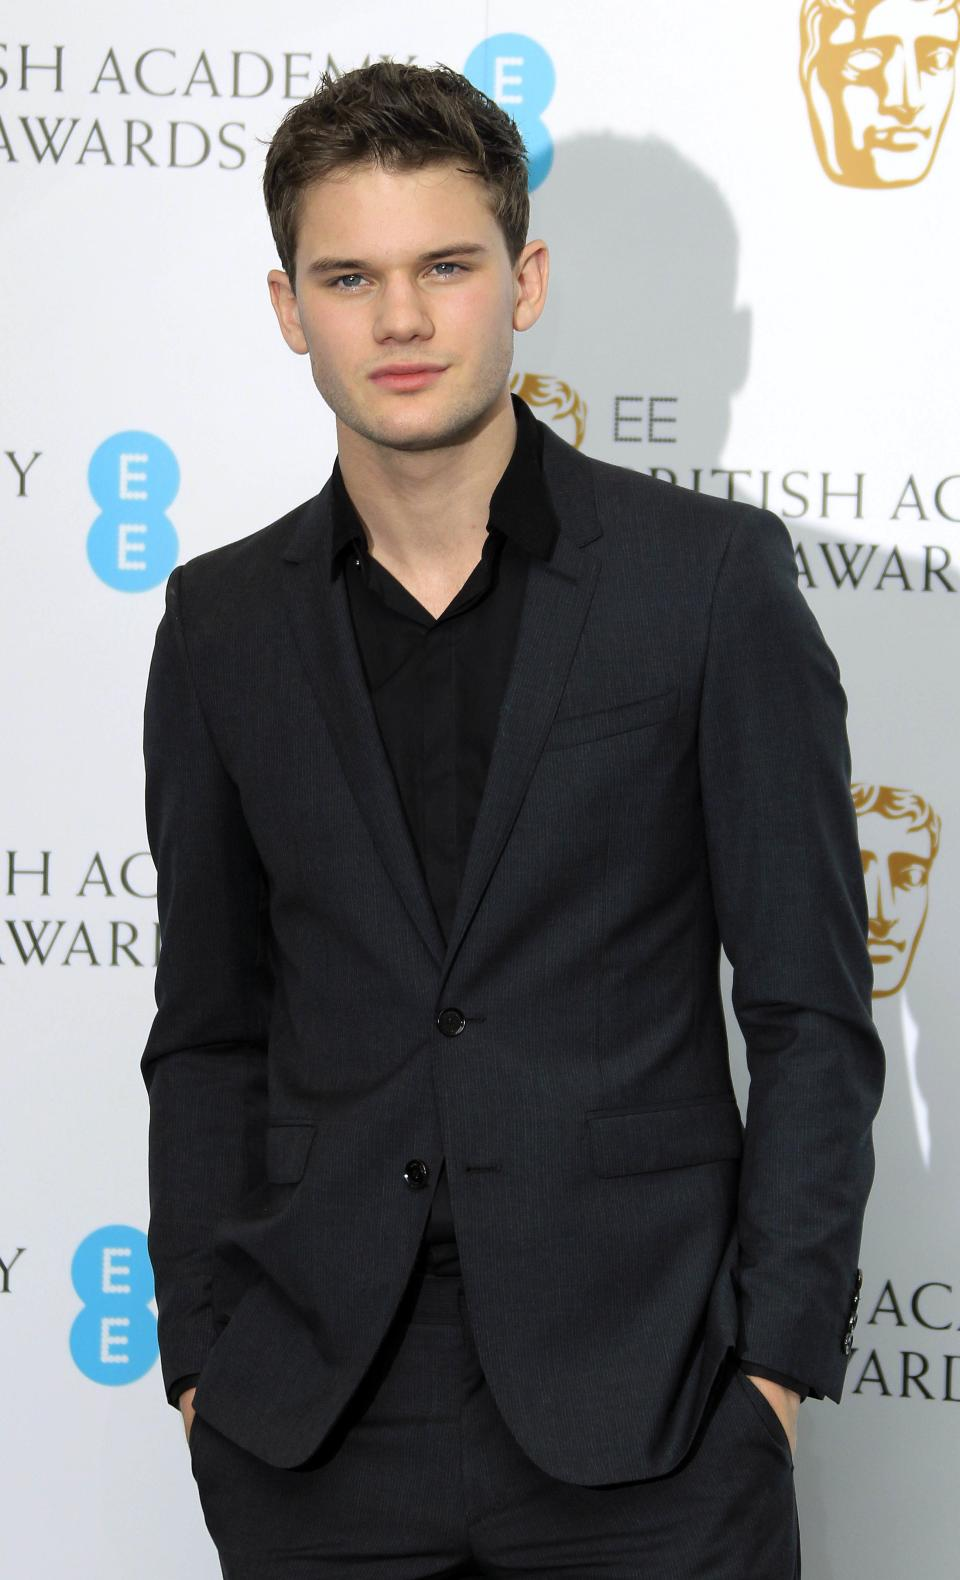 British actor Jeremy Irvine poses during a photo call after announcing the nominations for the EE British Academy Film Awards in 2013 at BAFTA Headquarters in Piccadilly, central London, Wednesday, Jan. 9, 2013. (Photo by Joel Ryan/Invision/AP)